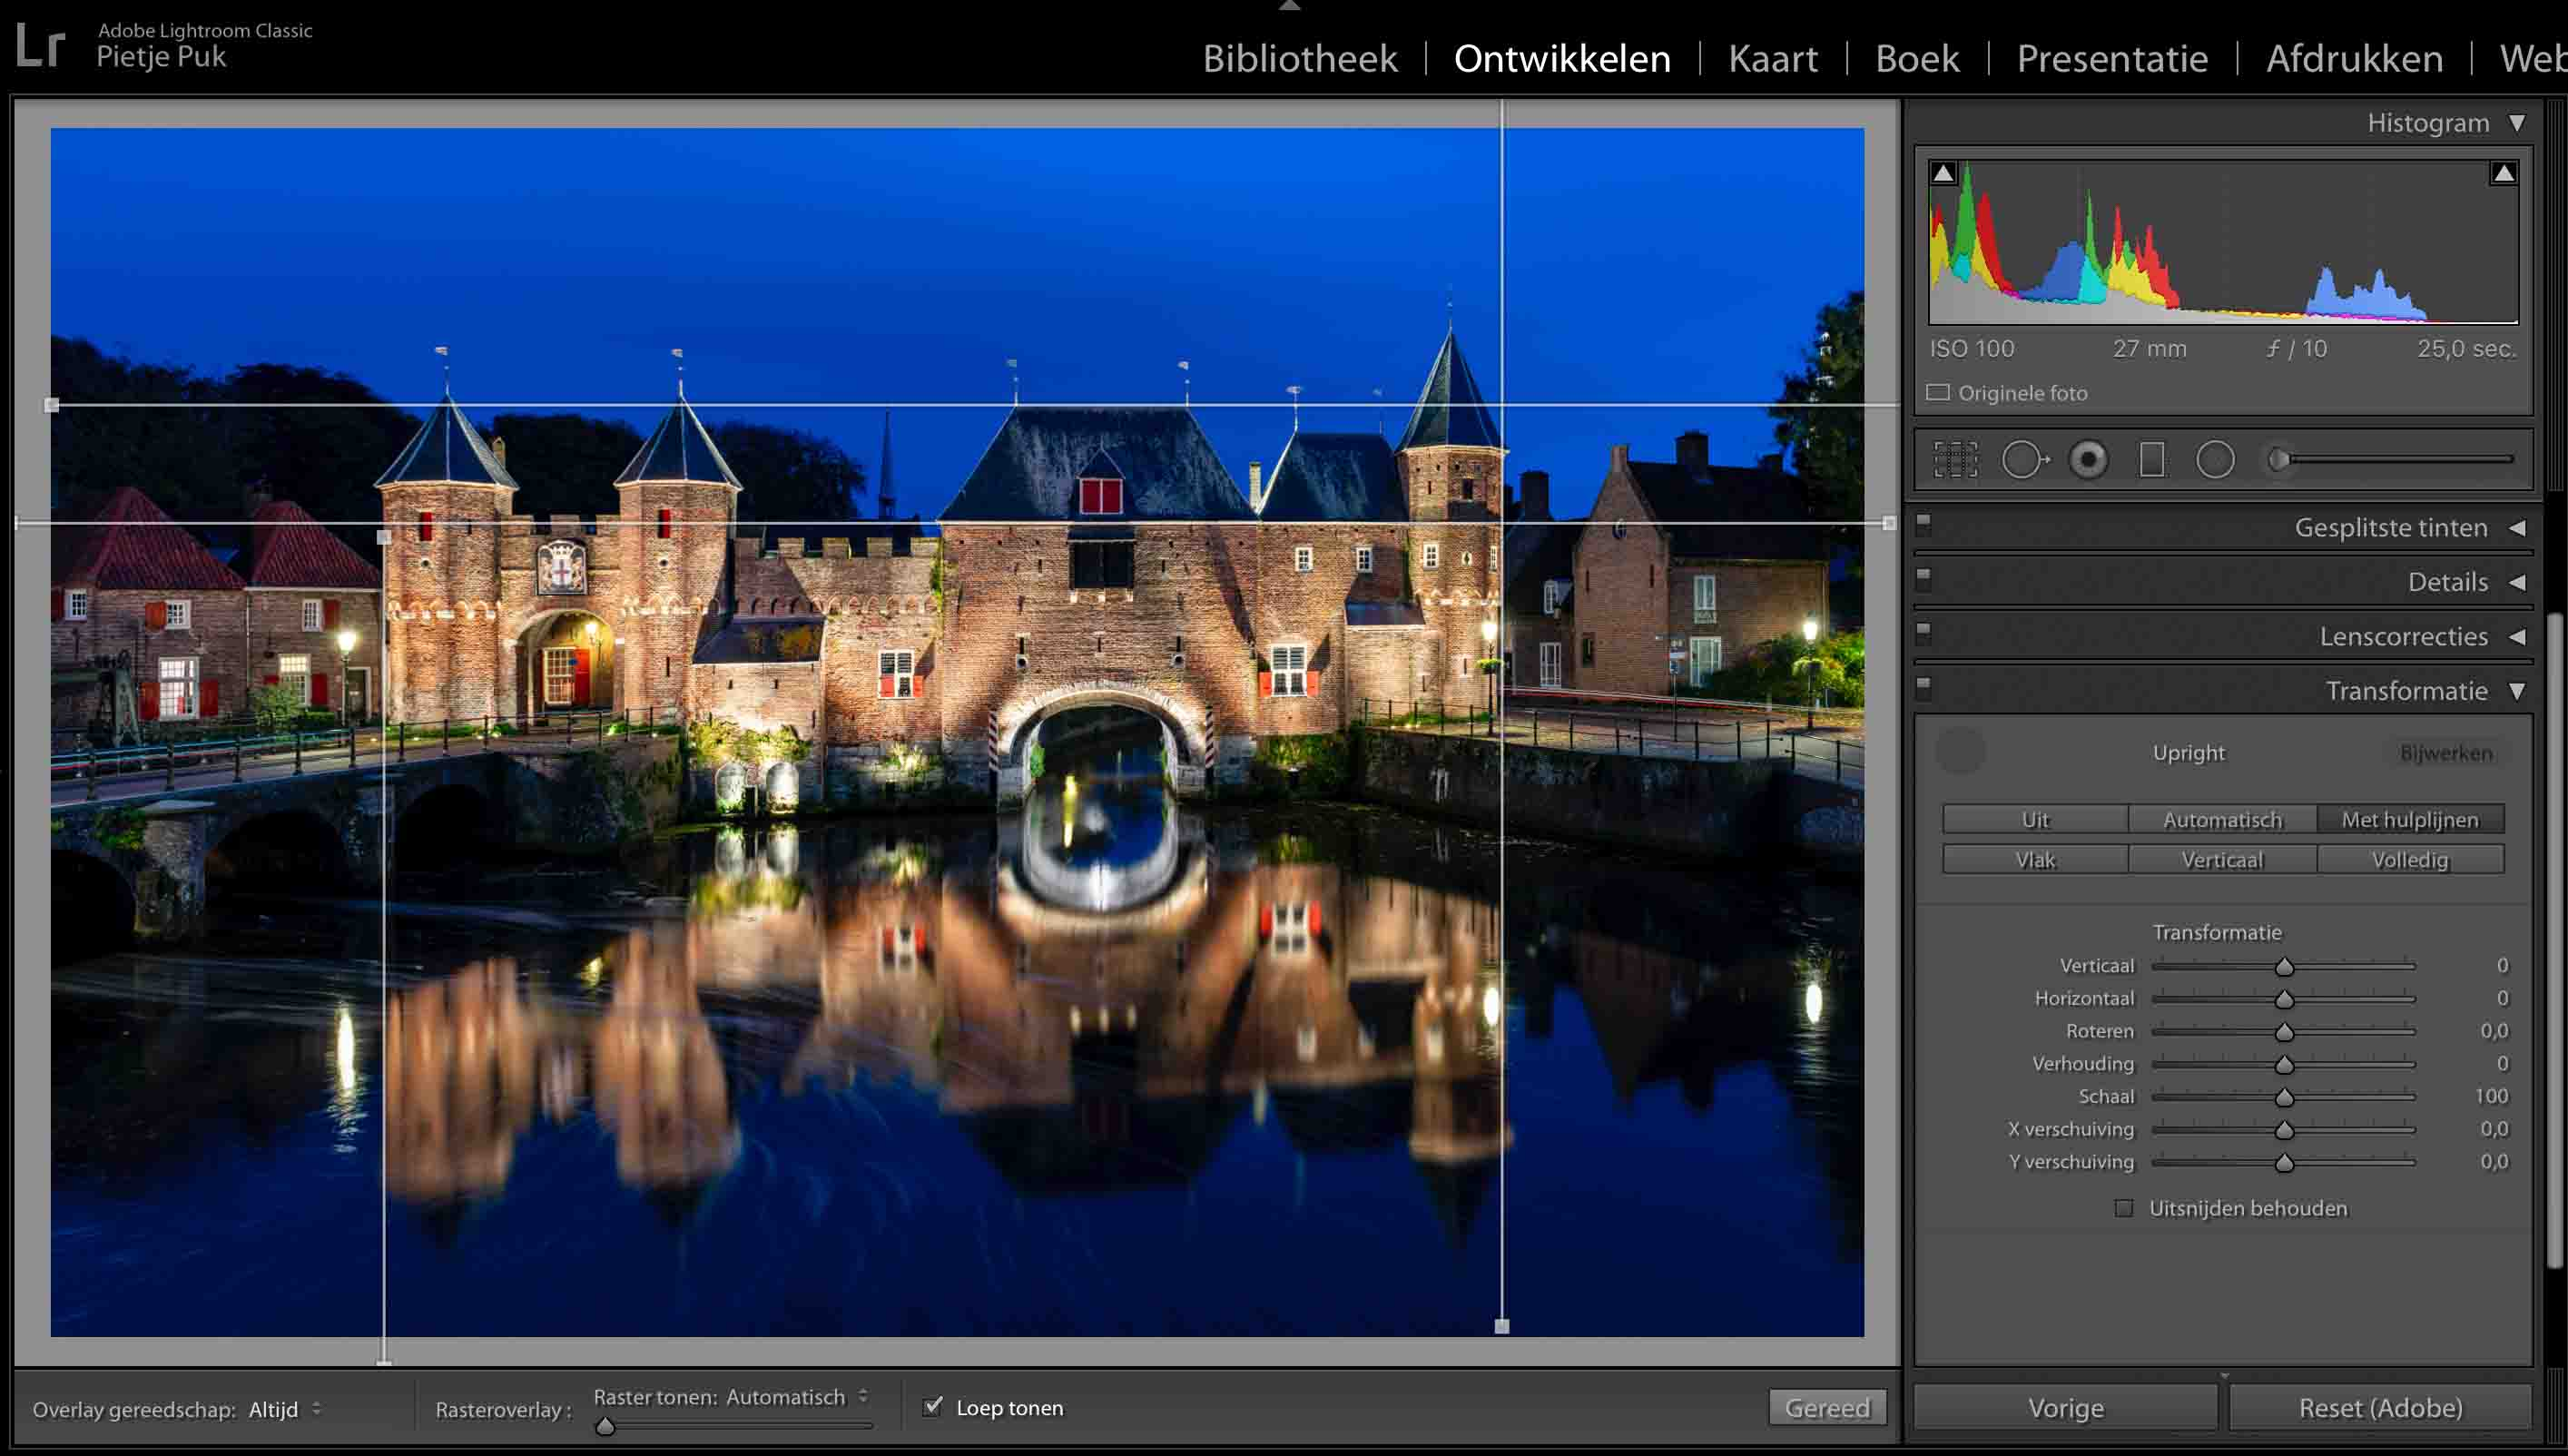 Transformatie in Adobe Lightroom